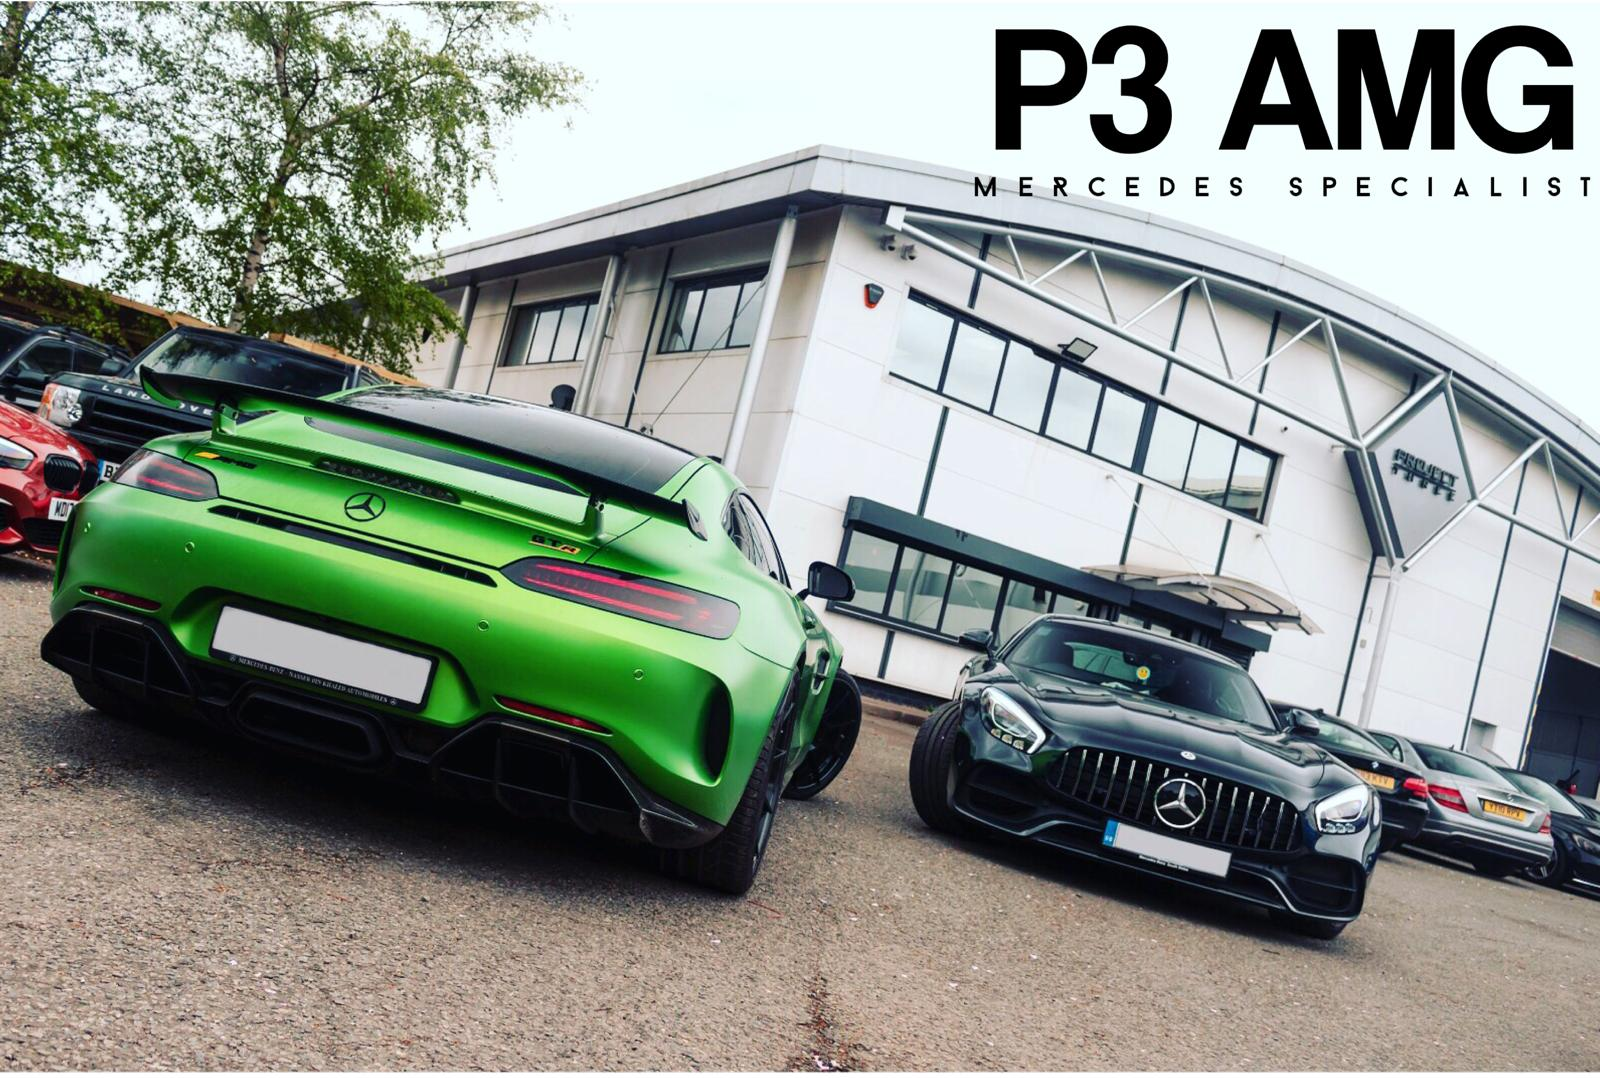 Welcome to P3 AMG - P3 AMG